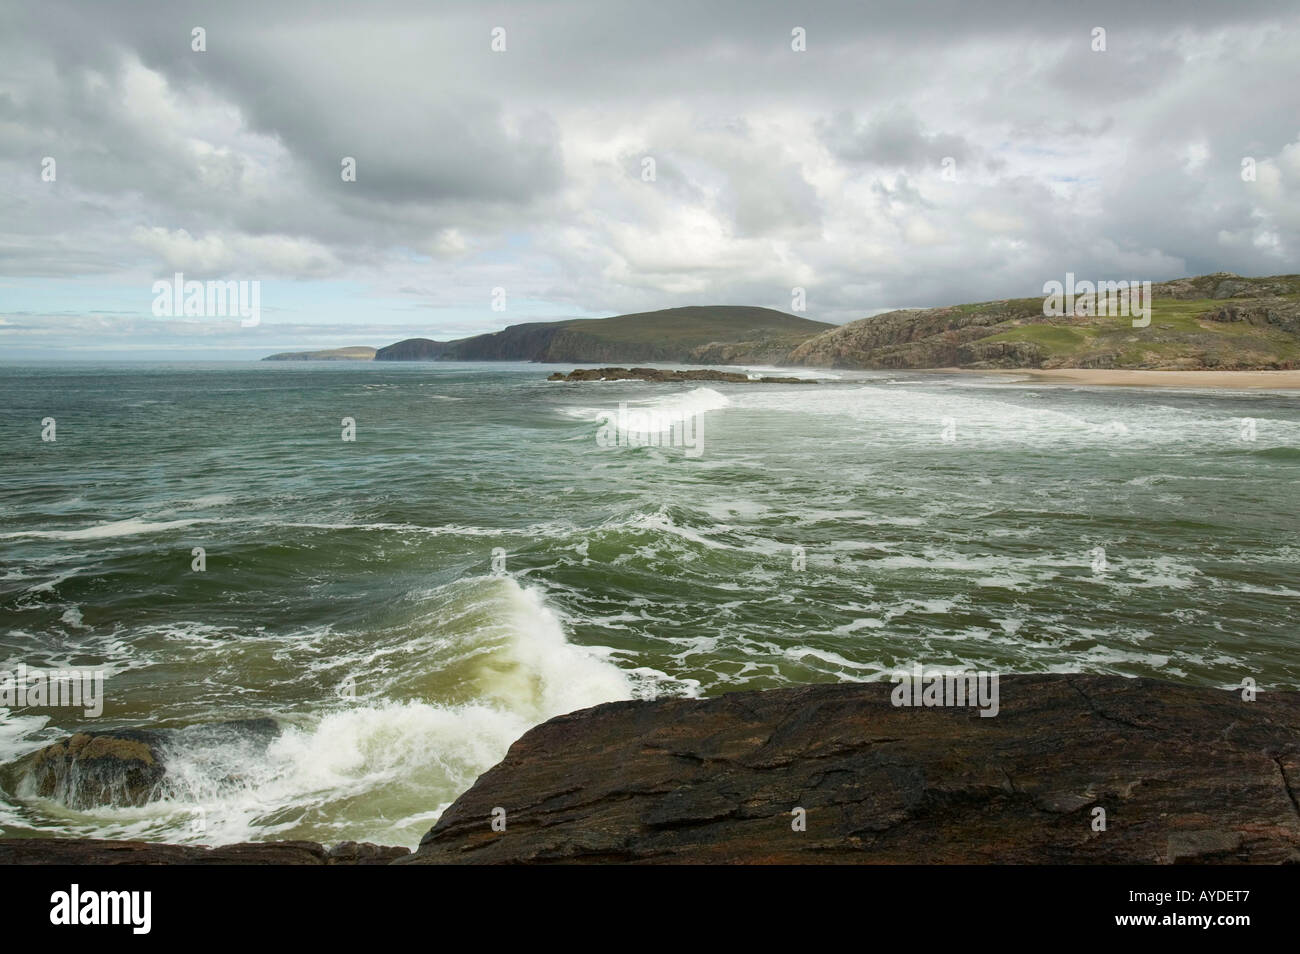 waves crashing against a rocky outcrop in Sandwood Bay, Sutherland, Scotland, UK Stock Photo